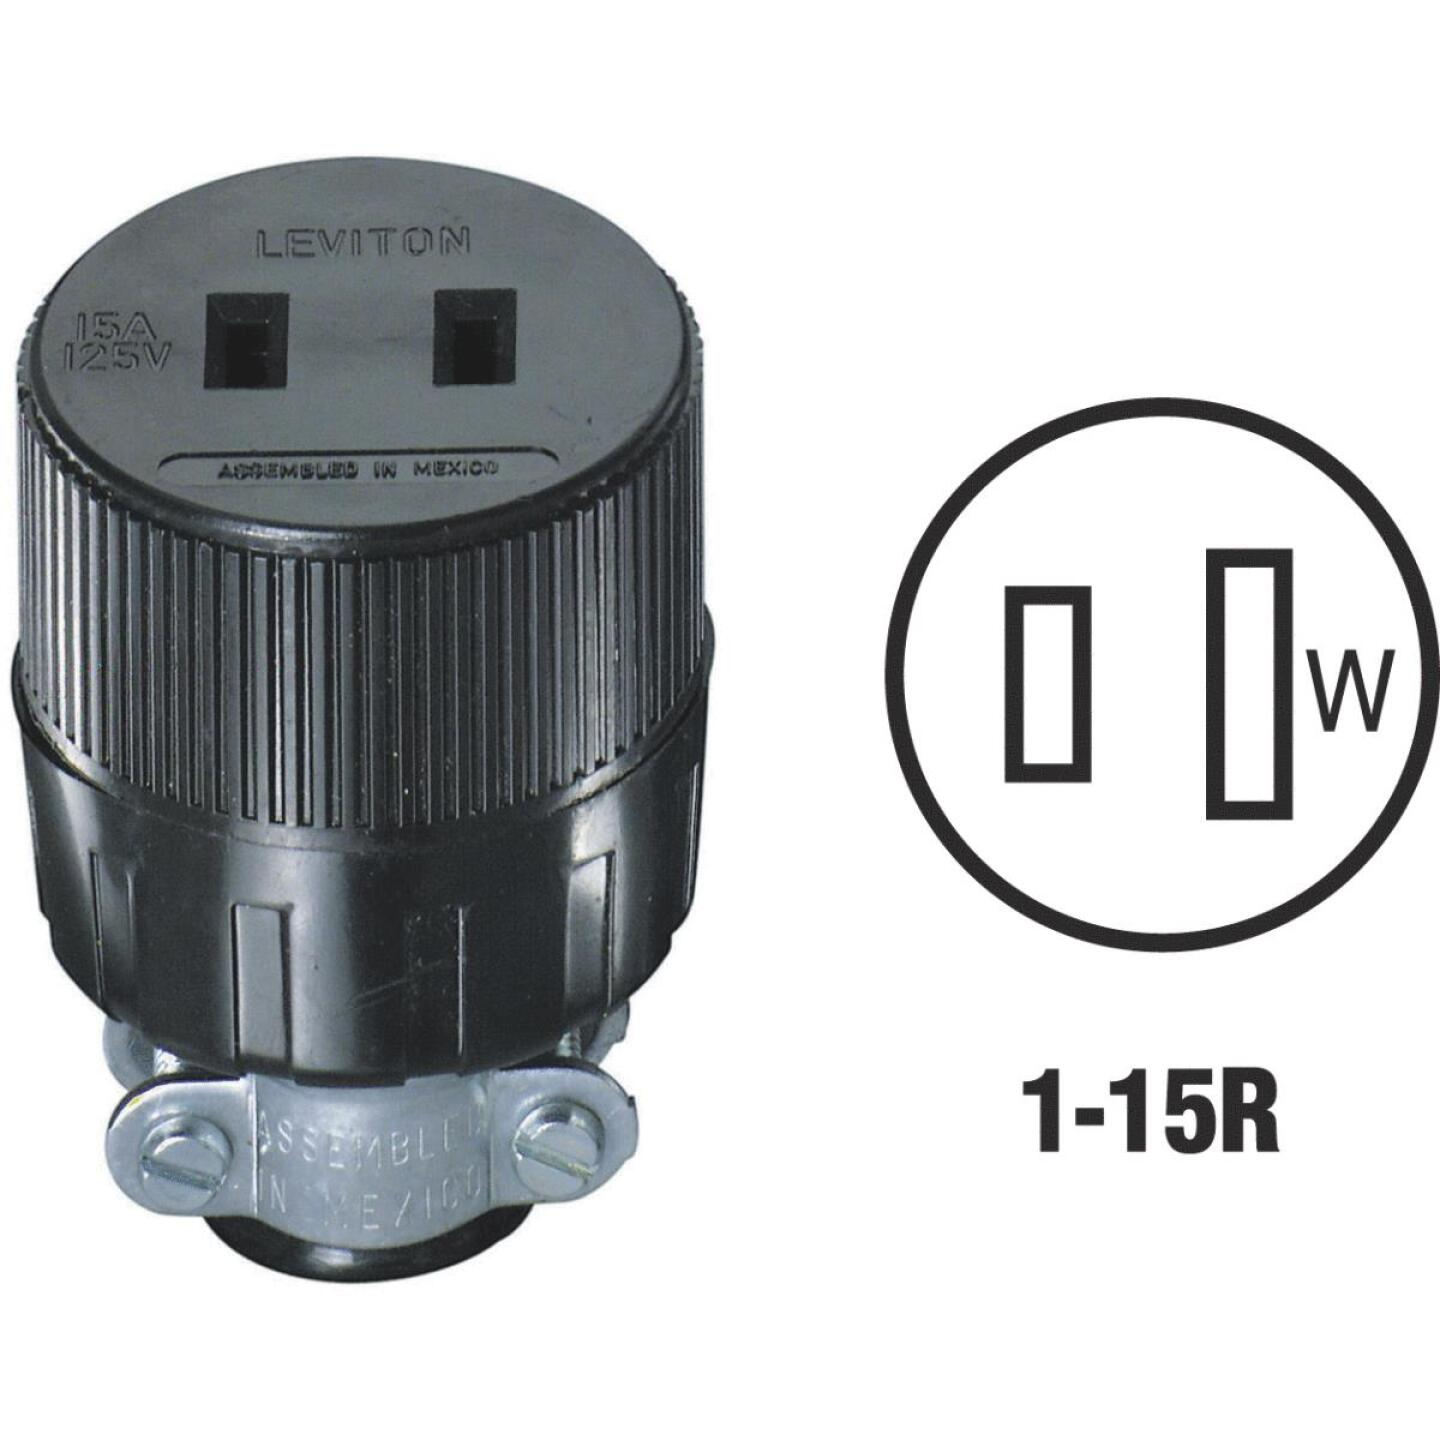 Leviton 15A 125V 2-Wire 2-Pole Round Cord Connector Image 1